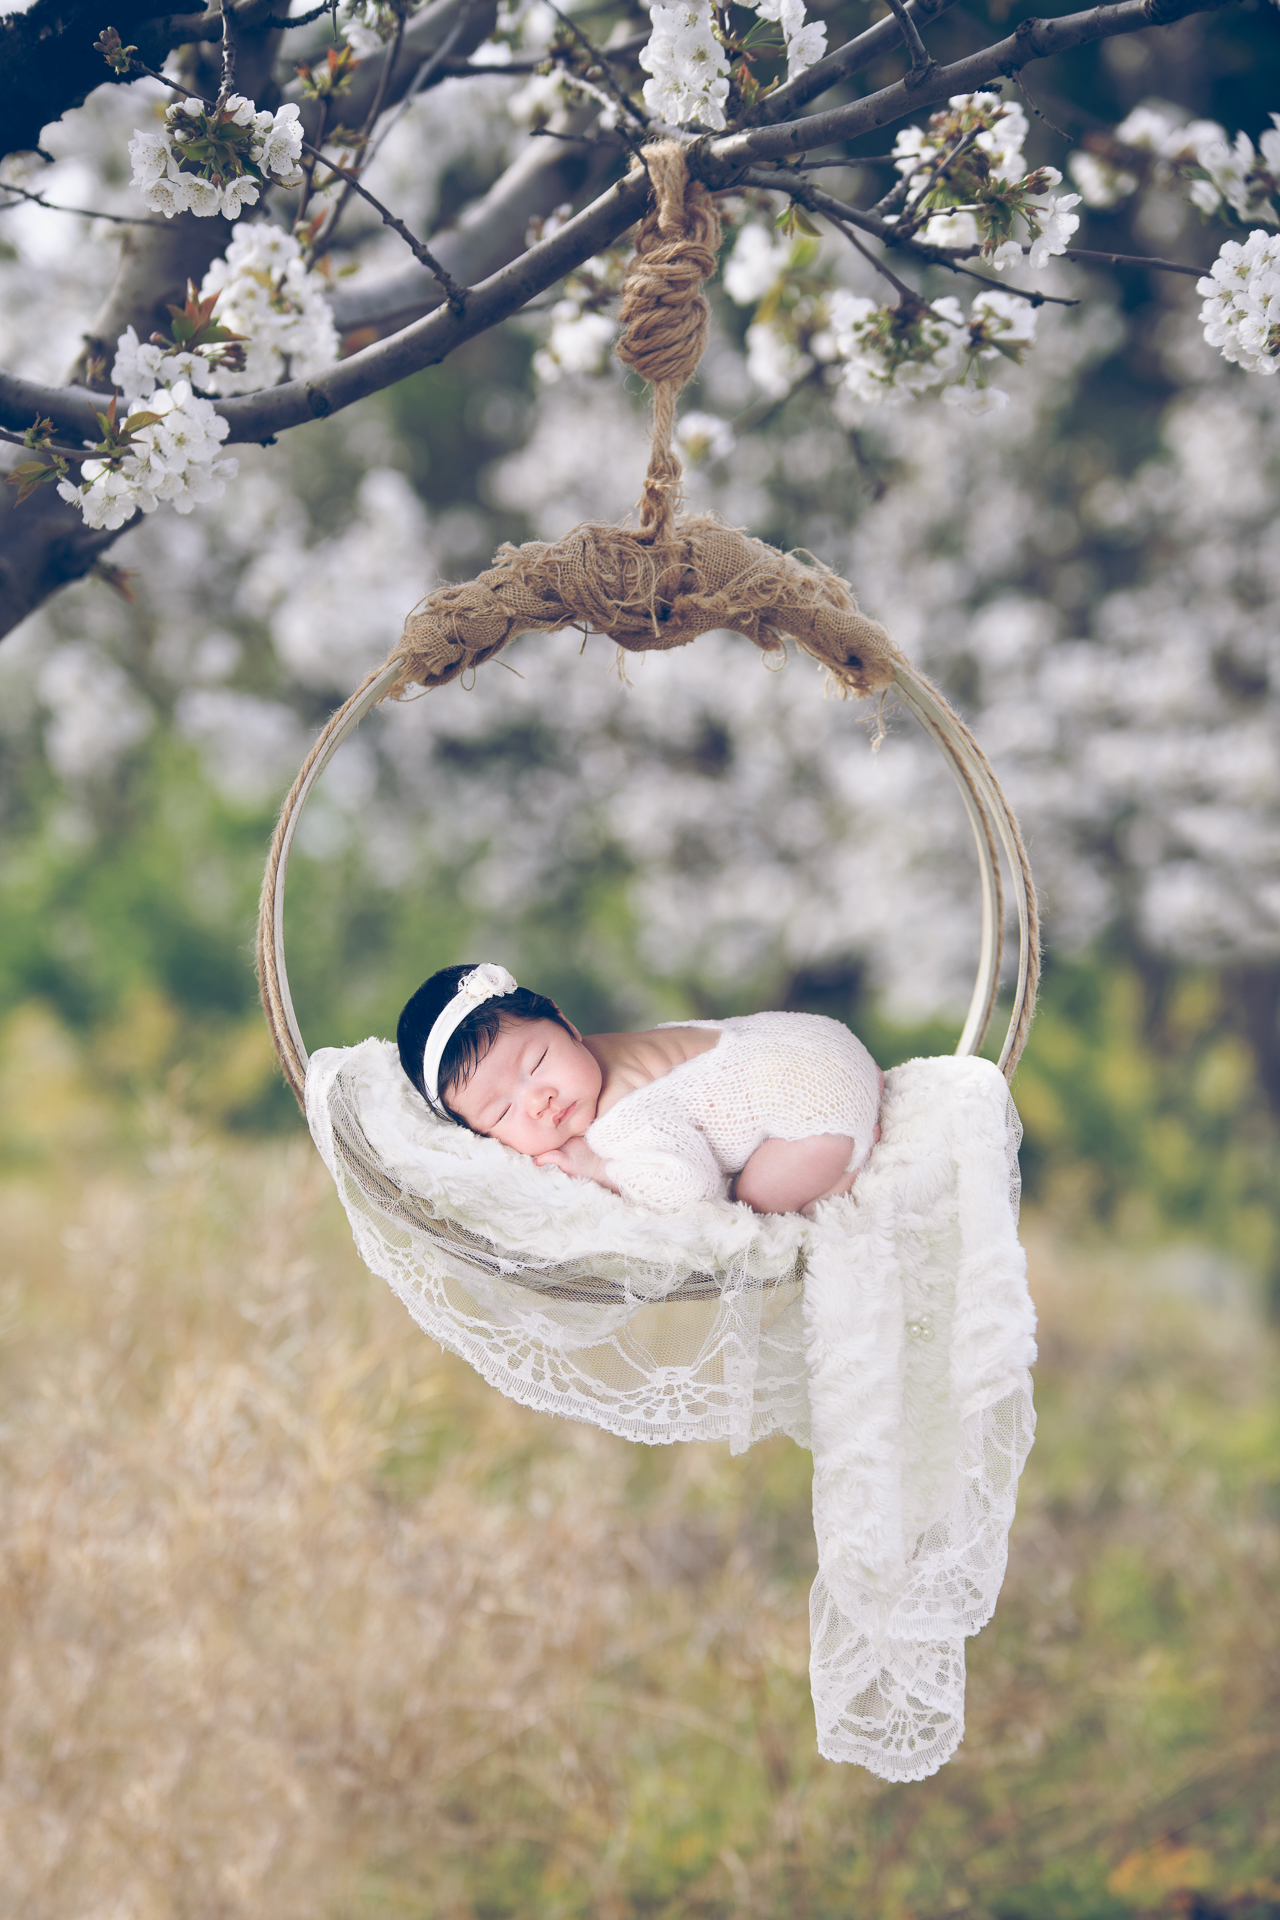 Newborn rests outdoors on hanging prop while wearing white outfit and white headband. White flowers decorates the scene.